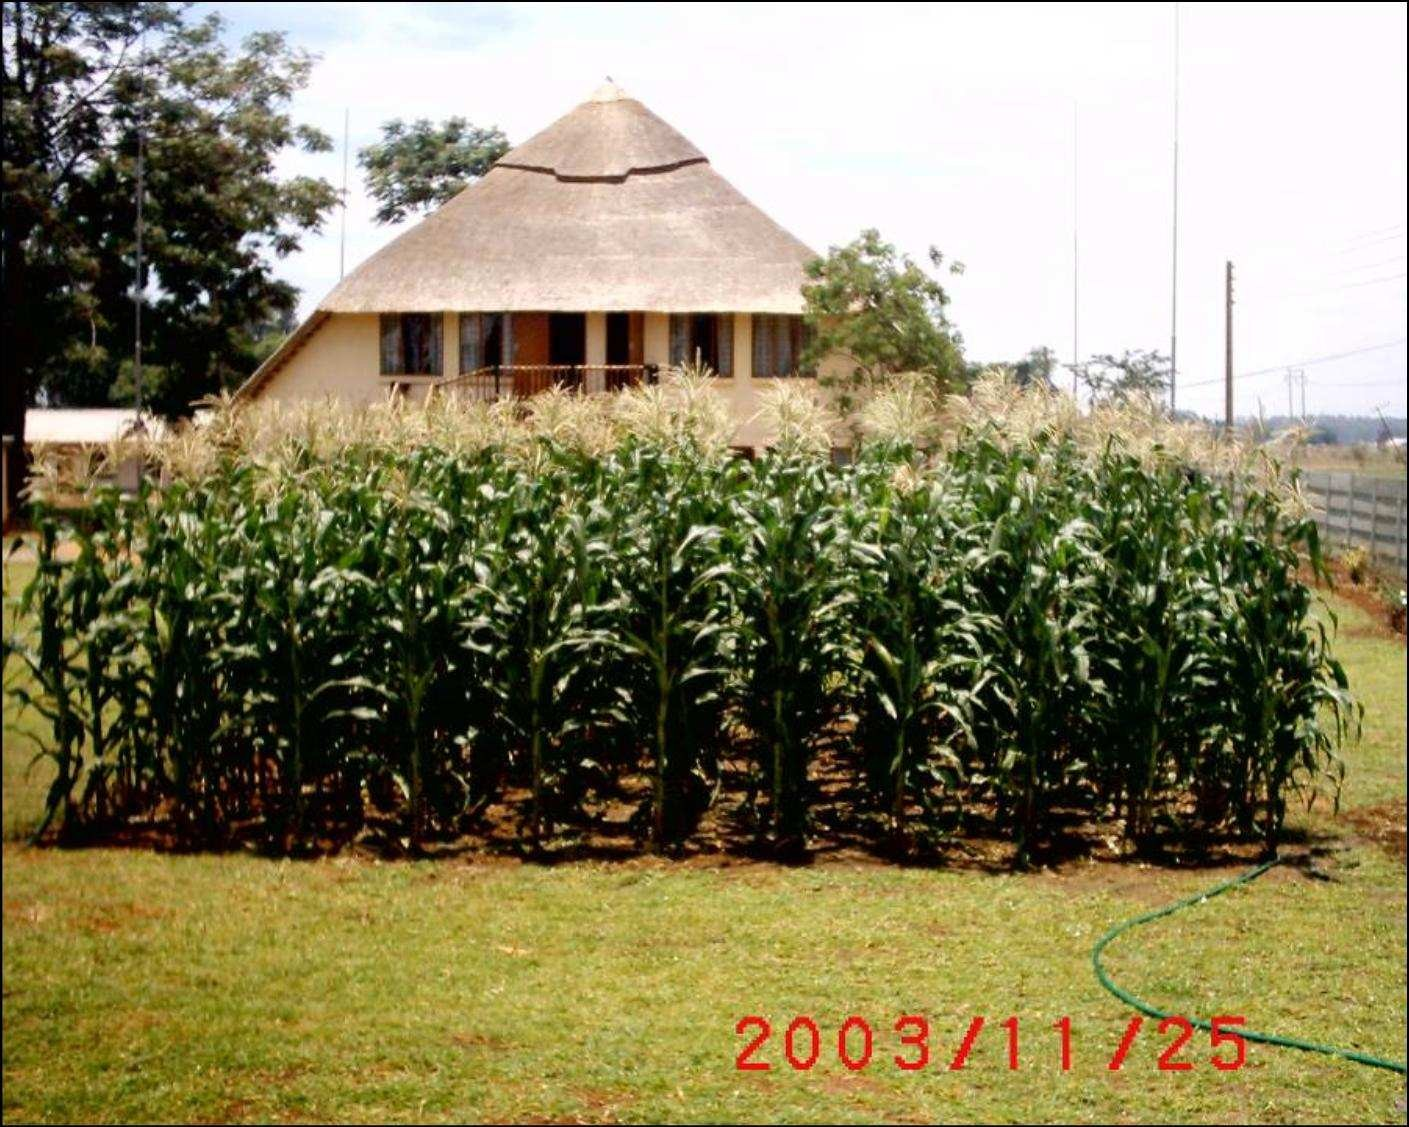 Figure 3: A demonstration garden, also called a Well Watered Garden. The 2004 extrapolated yield on this plot exceeded 11 tons/ha.